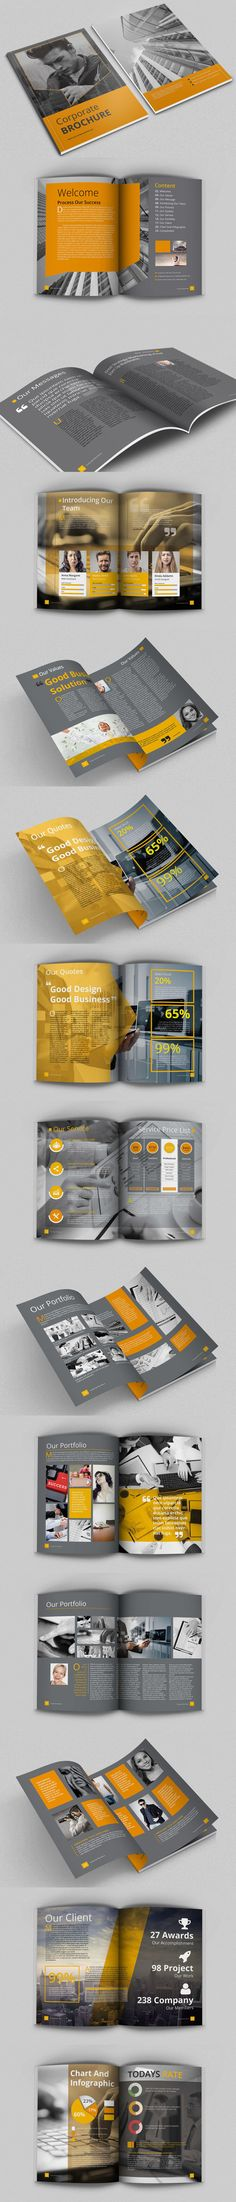 Multipurpose / Corporate Brochure Template InDesign INDD - A4 And Letter Size